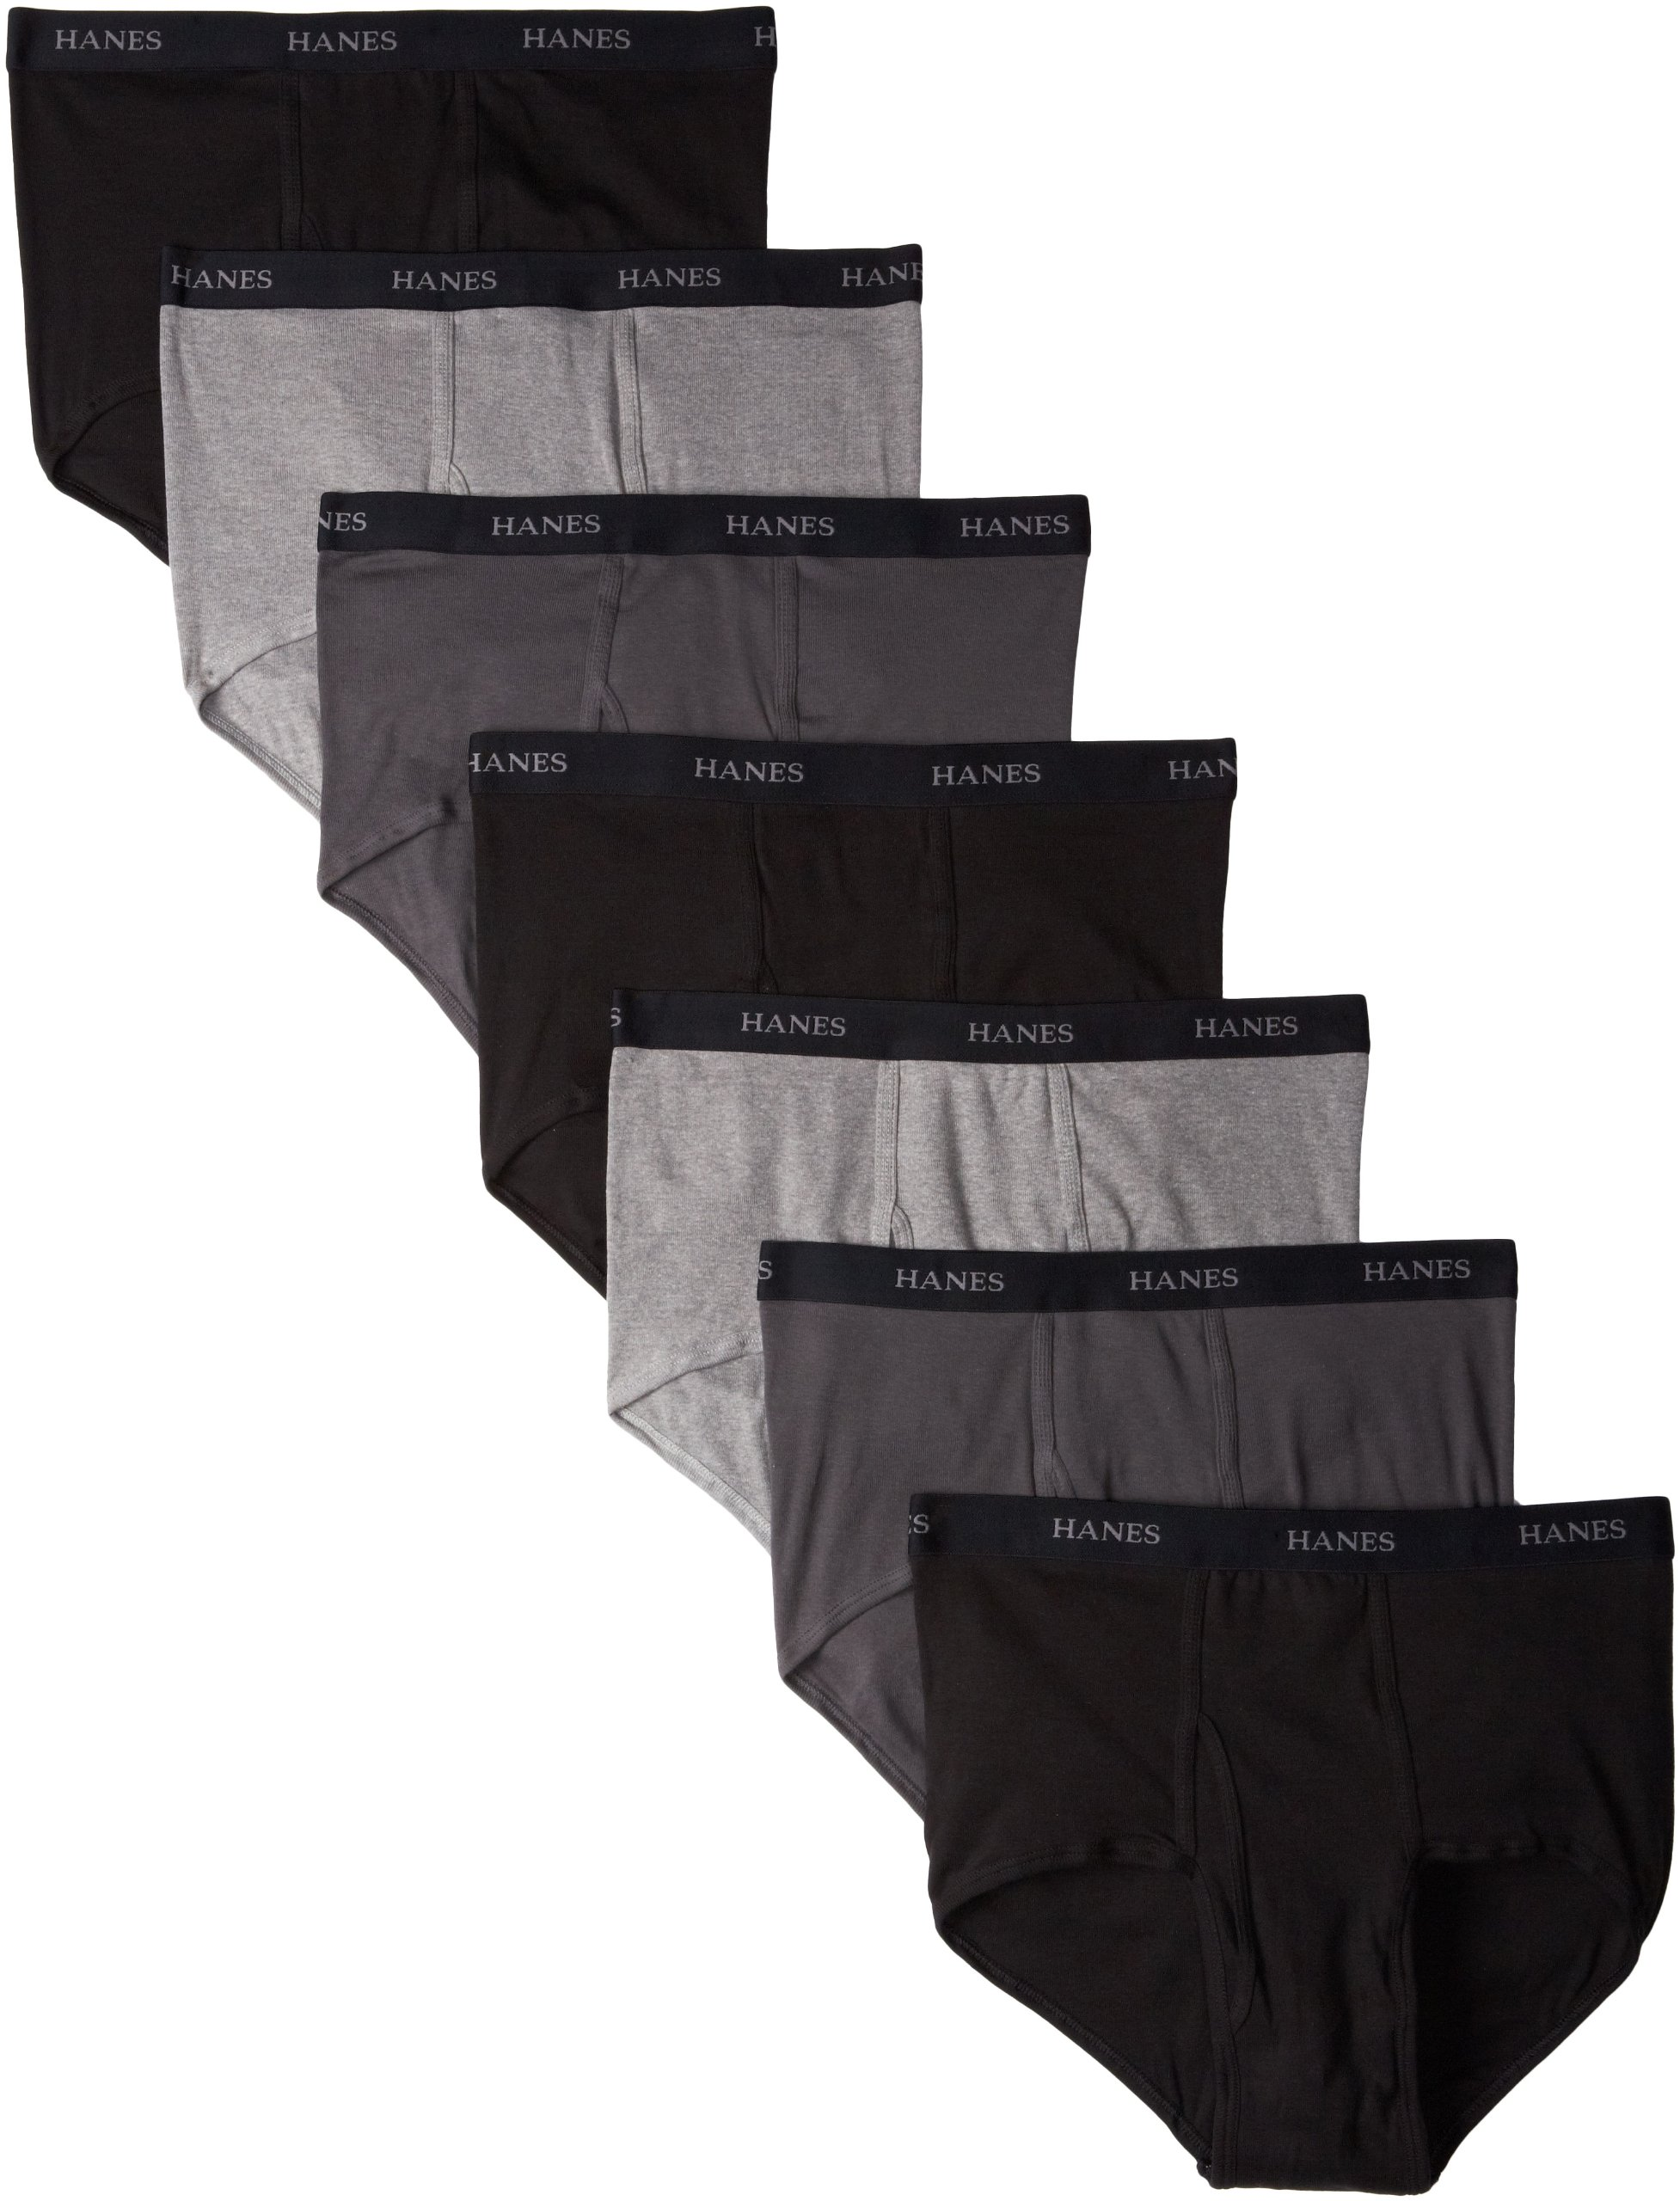 Hanes Ultimate Men's 7-Pack Full-Cut Briefs - Colors May Vary, Black/Grey, Large by Hanes Ultimate